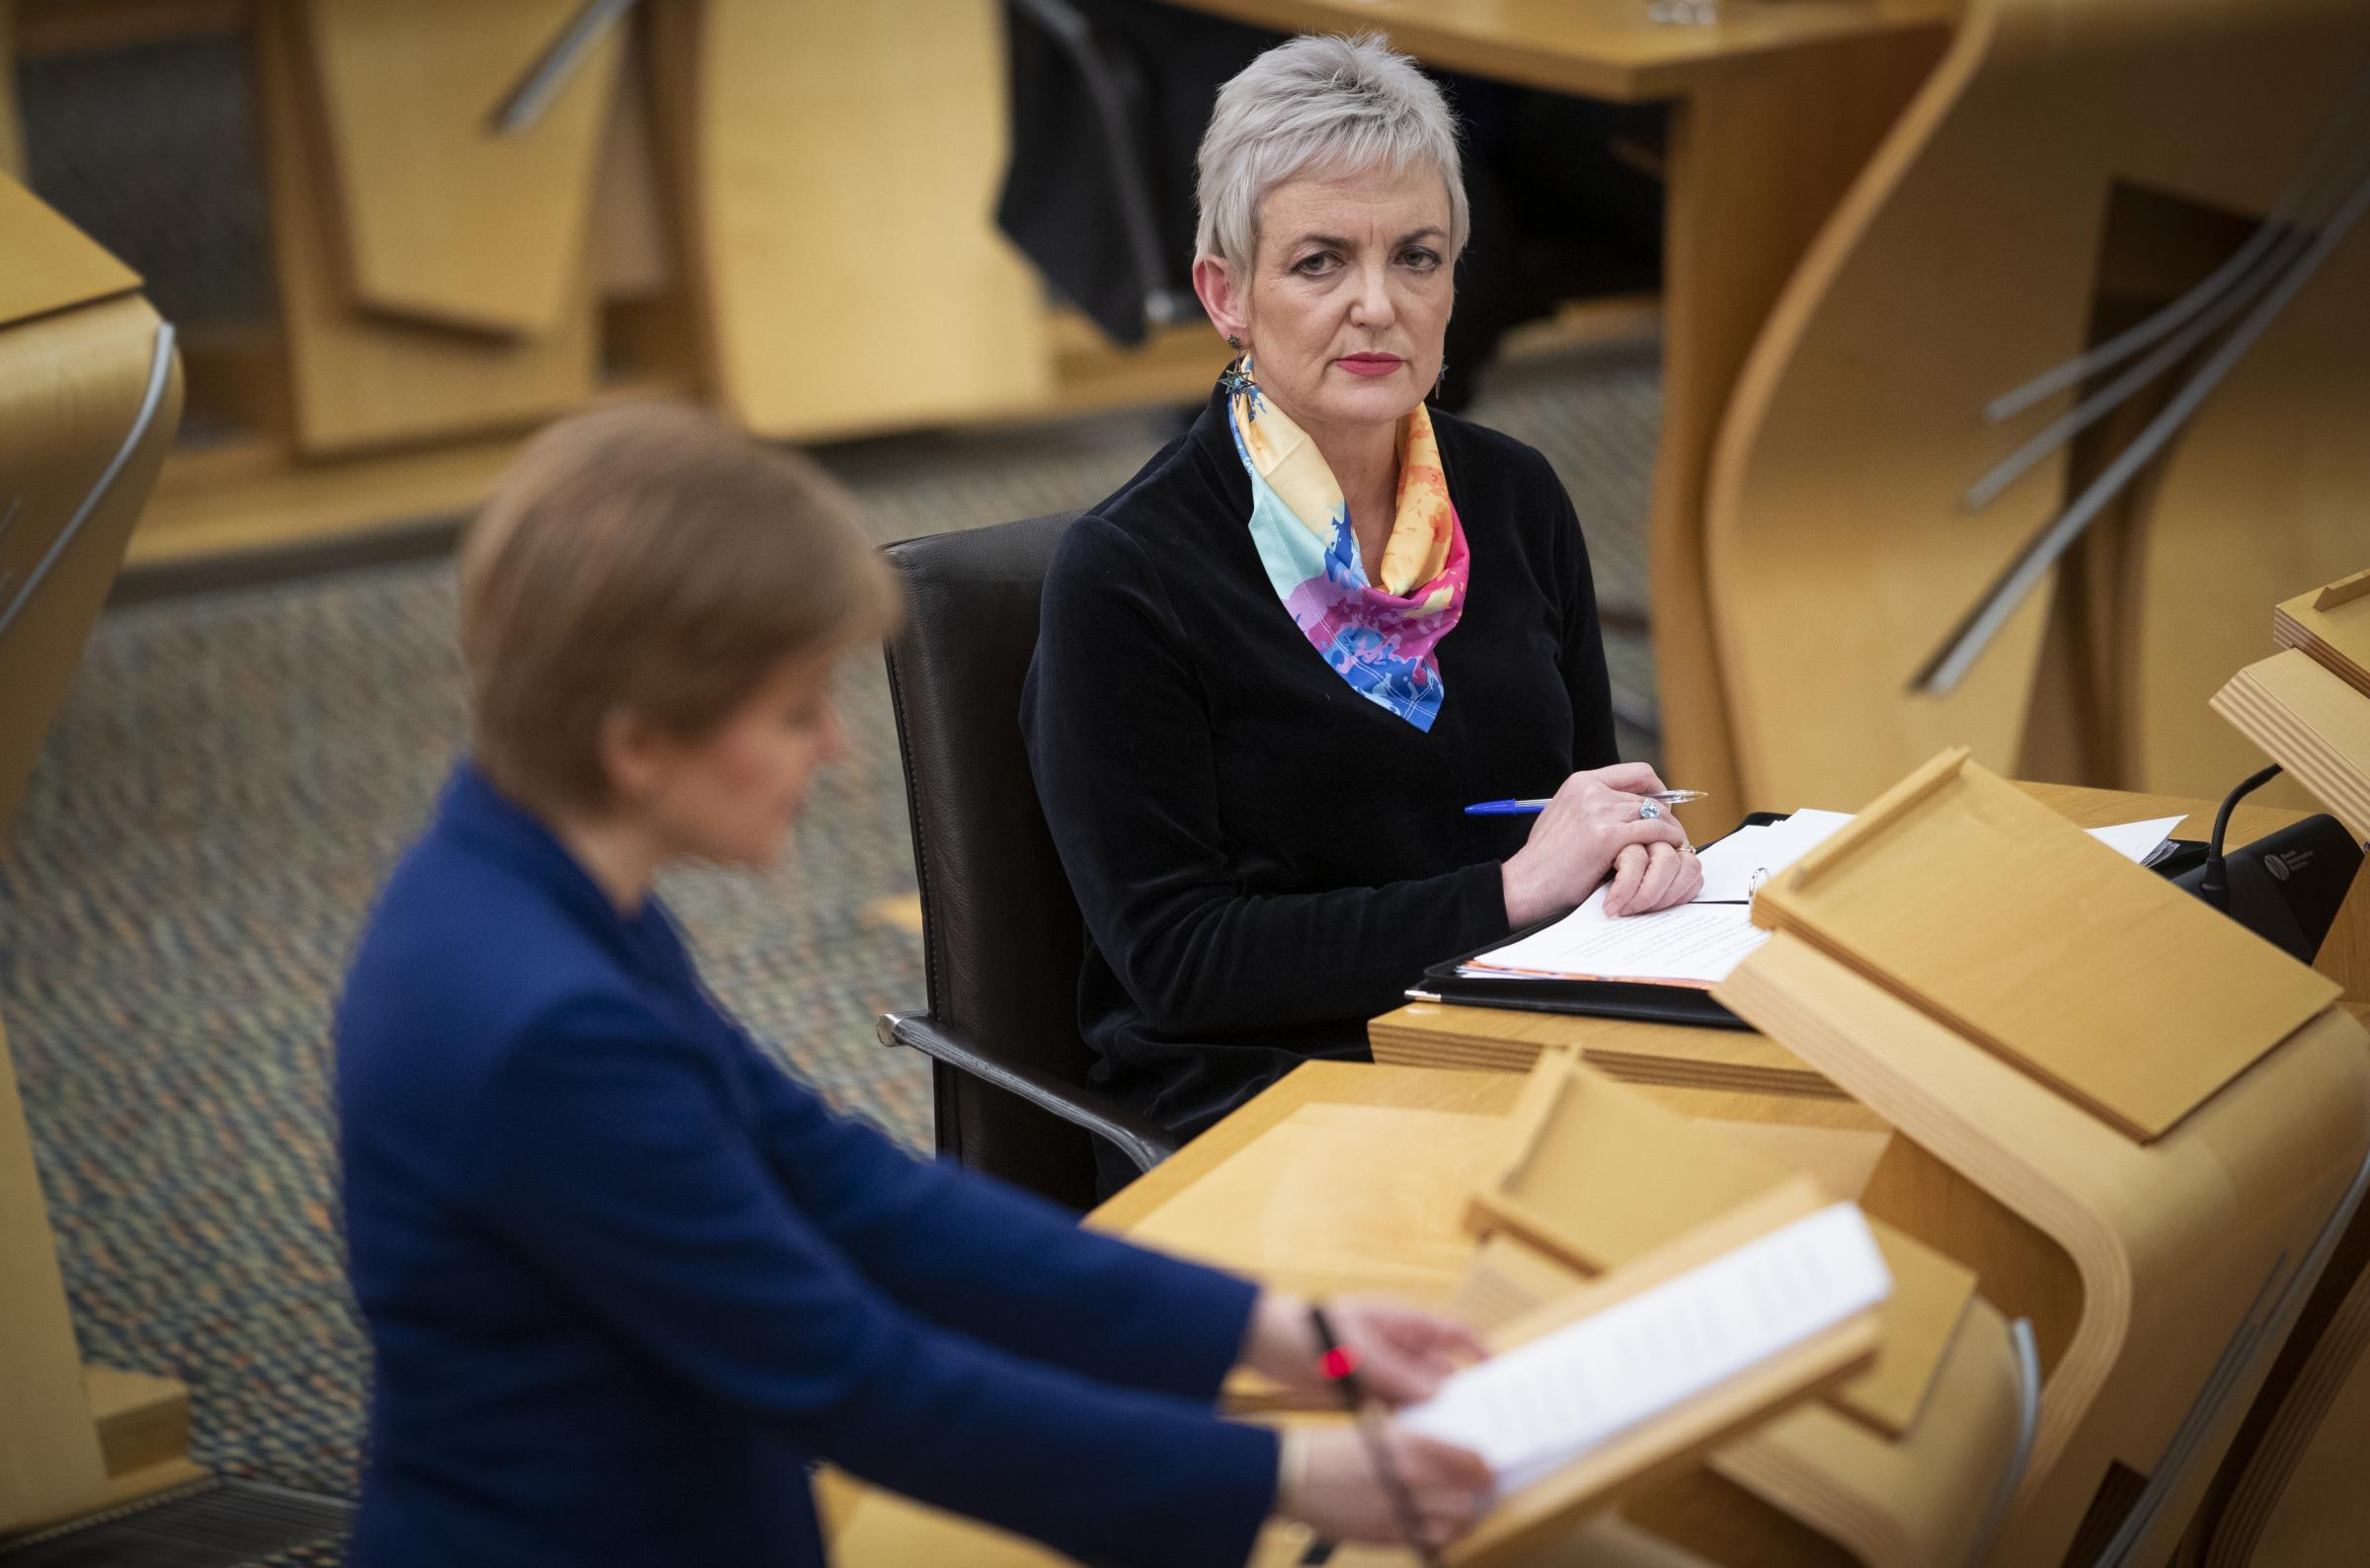 Scotland's drugs policy minister seeks four nations meeting on law change